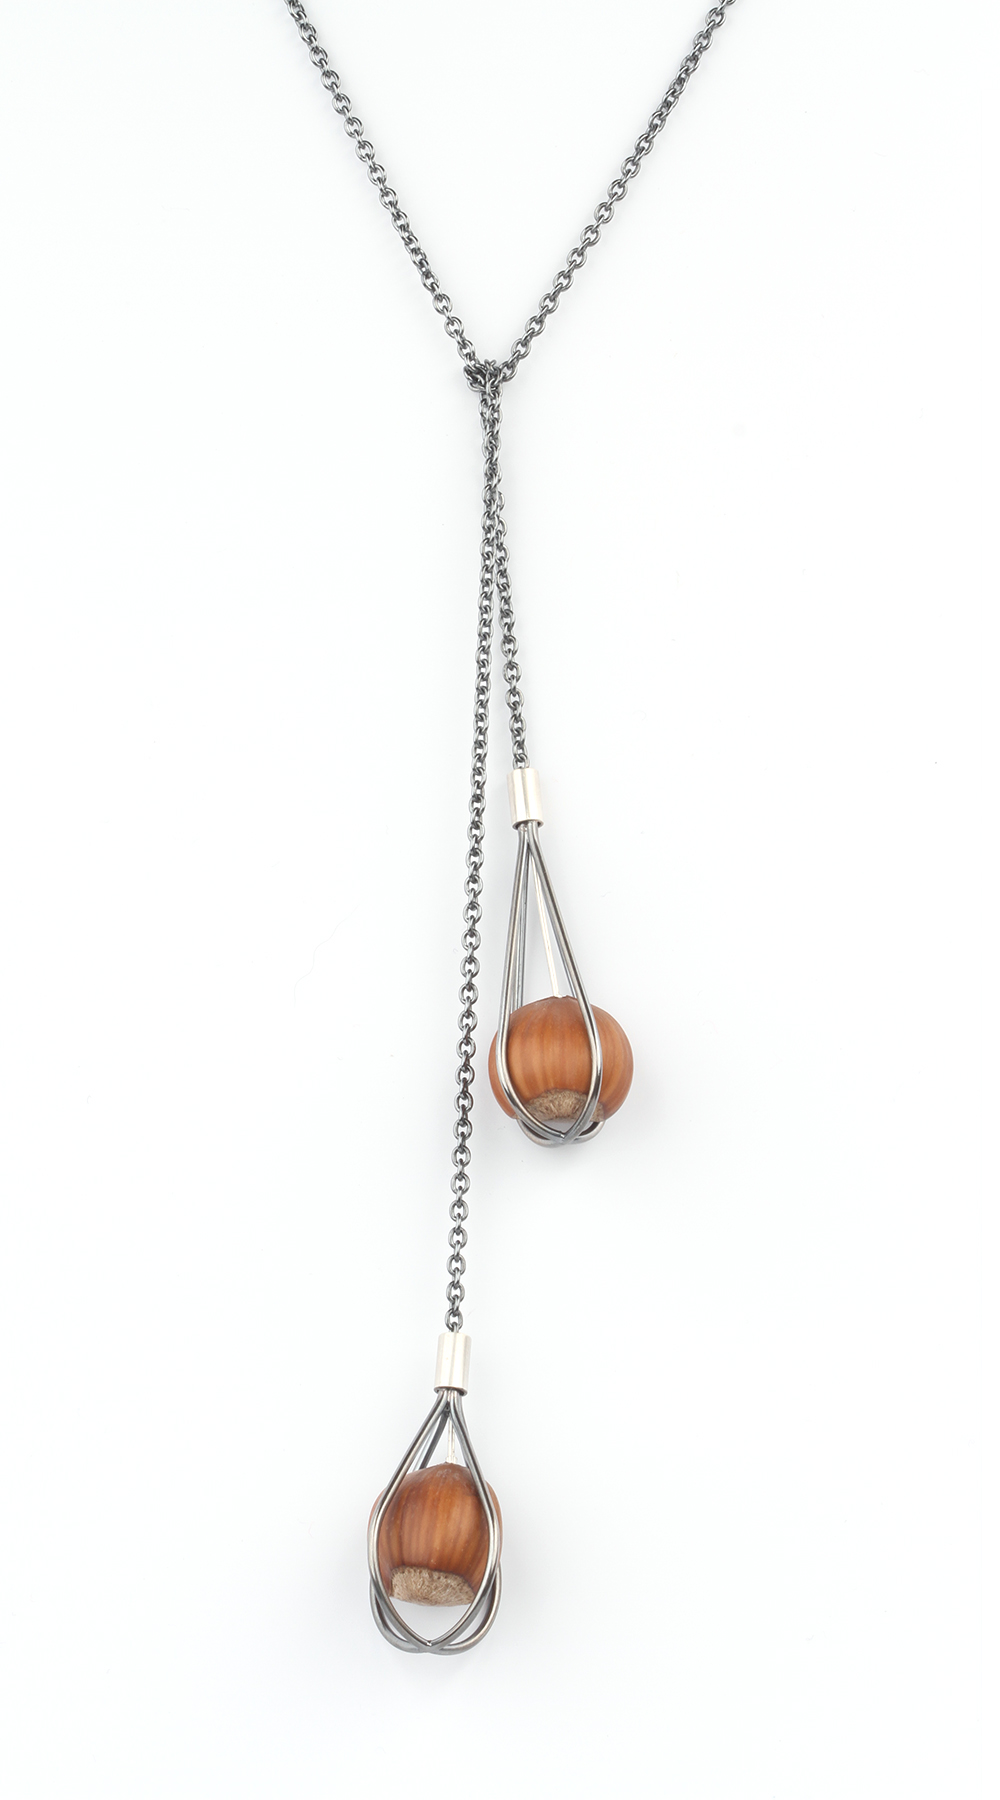 A necklace called Trapped Hazelnuts